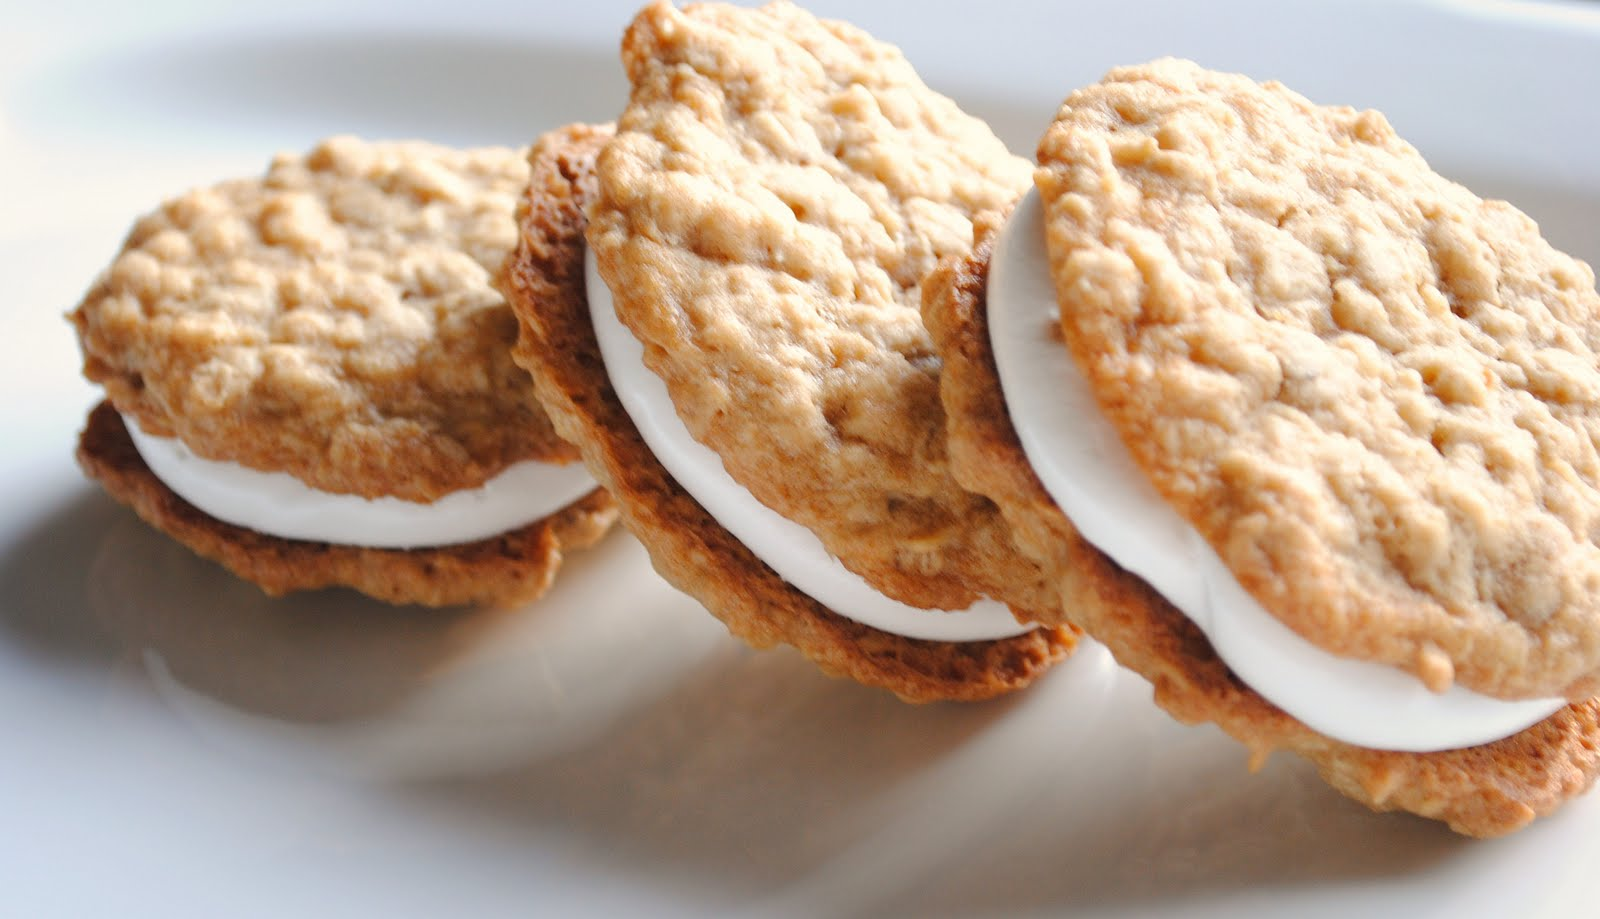 Homemade By Holman: Homemade Oatmeal Cream Pies